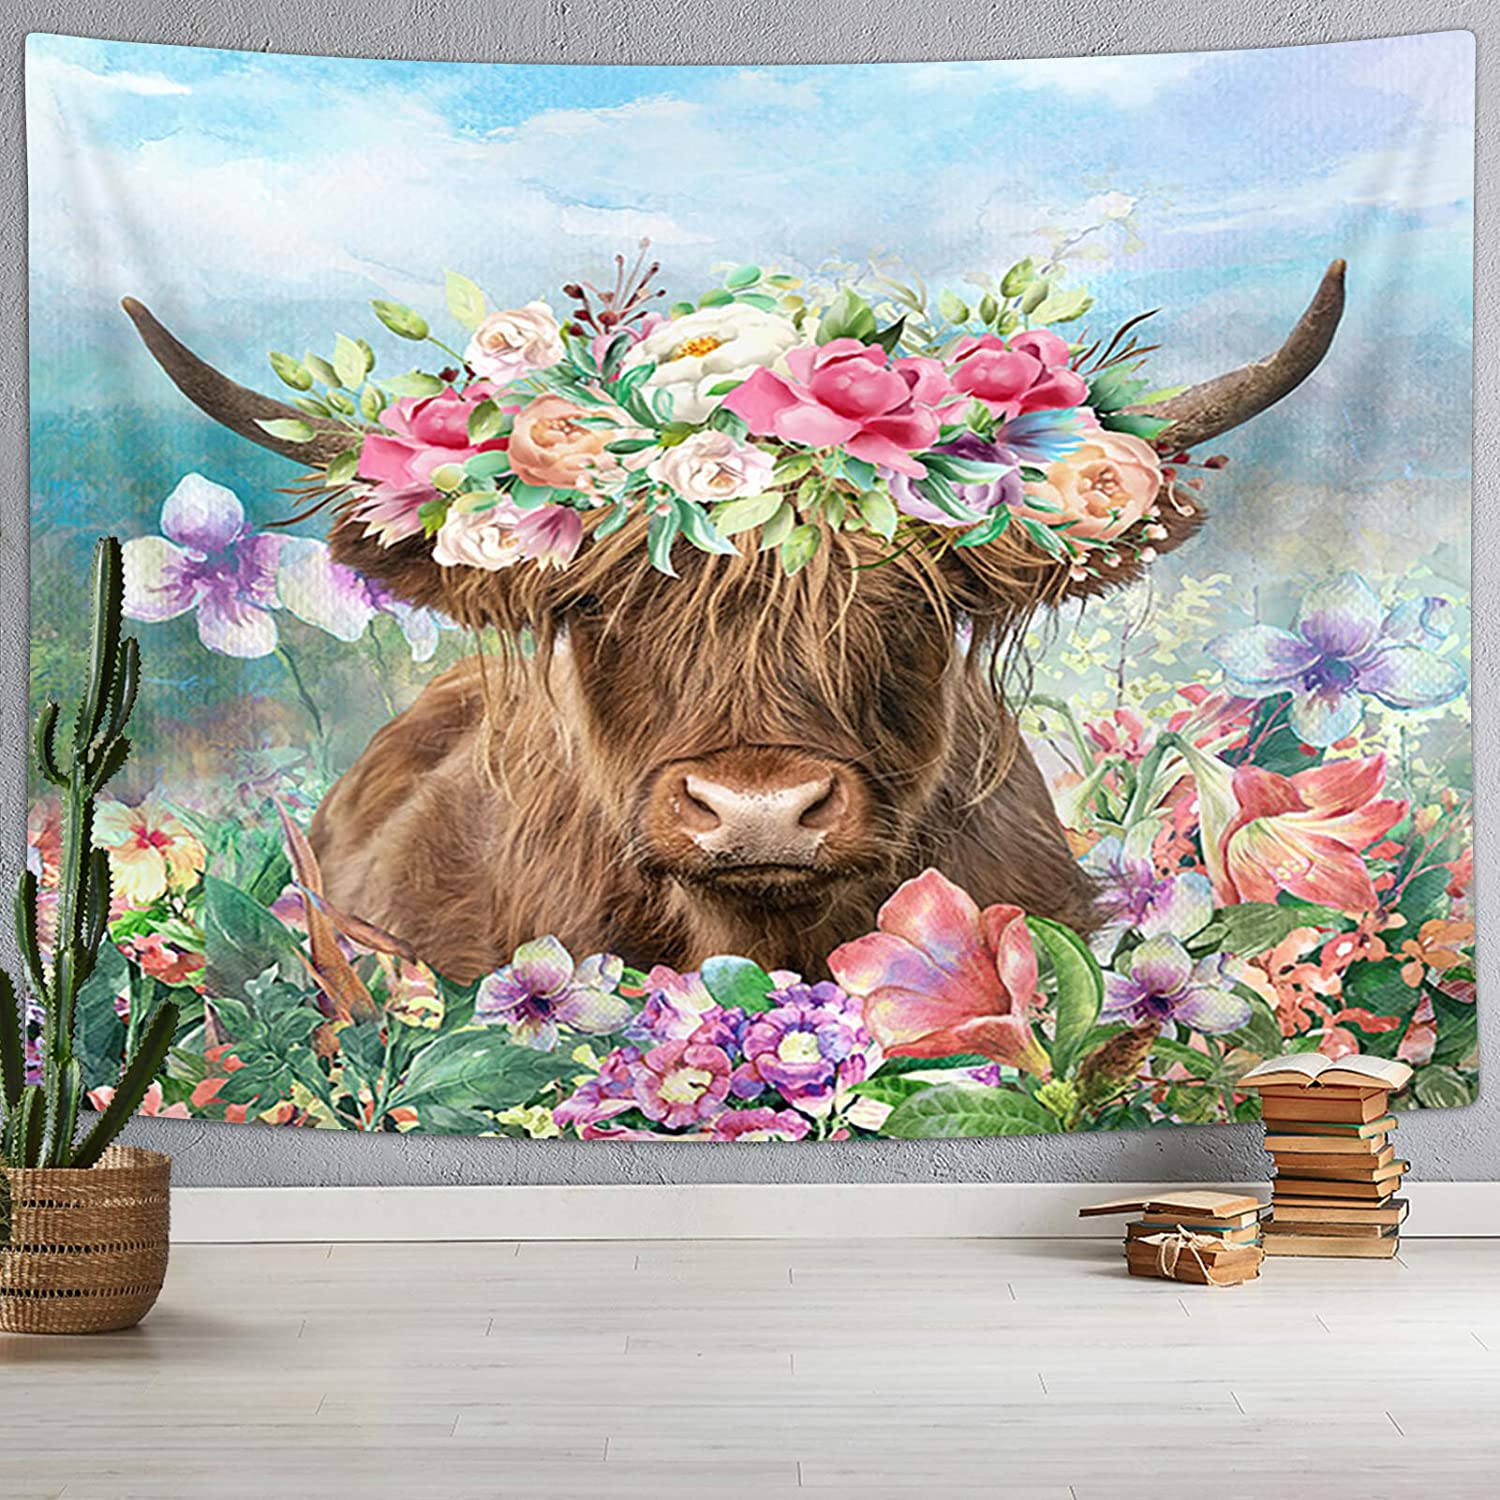 Funny Highland Cow Tapestry, Longhorn Bull Cattle Head with Flowers Garland in Rustic Flower Garden Wall Tapestry, Rustic Farmhous Tapestry Wall Hanging for Bedroom Living Room Dorm, 71X60IN